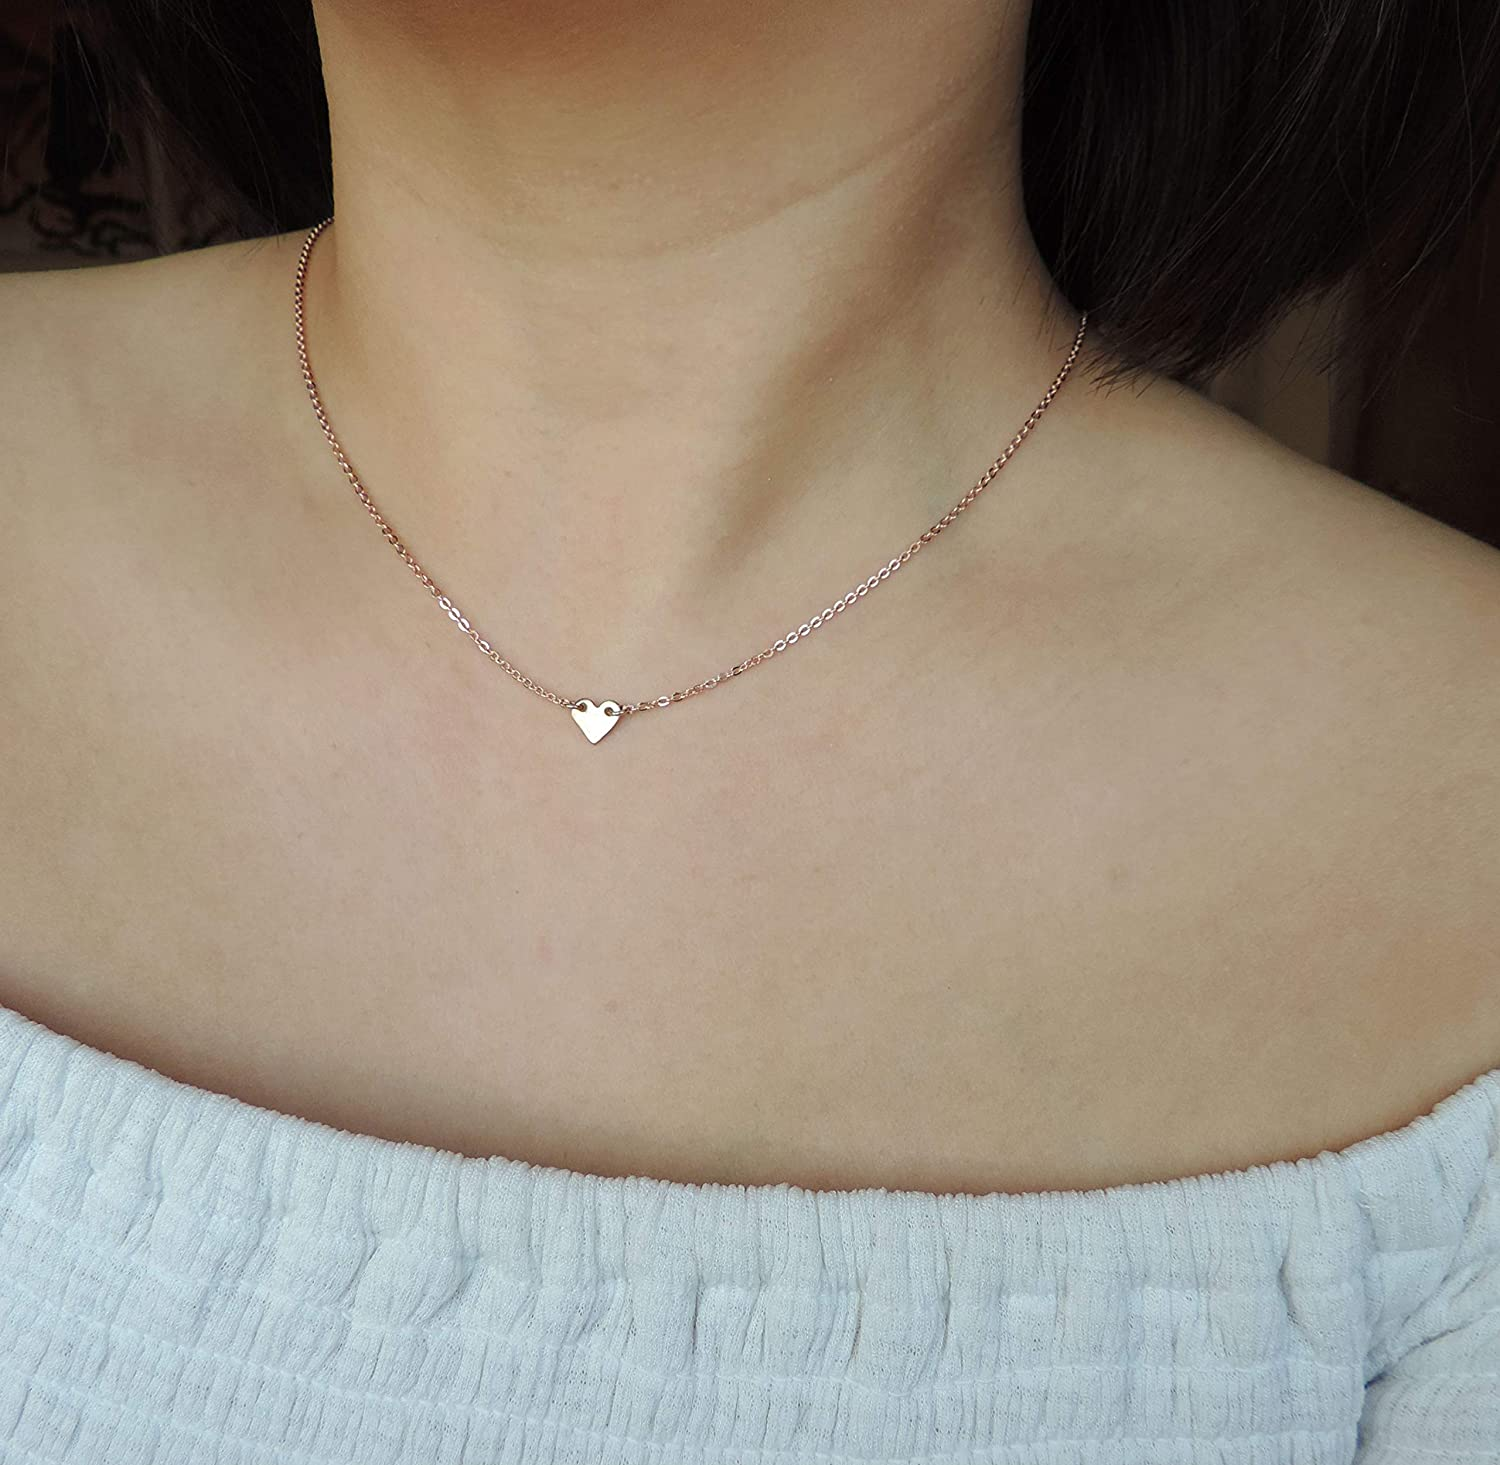 Small Necklaces Dainty Silver Heart Necklace Puff Heart Sterling Silver Necklace Silver Heart Necklace Delicate Charm Heart Jewellery